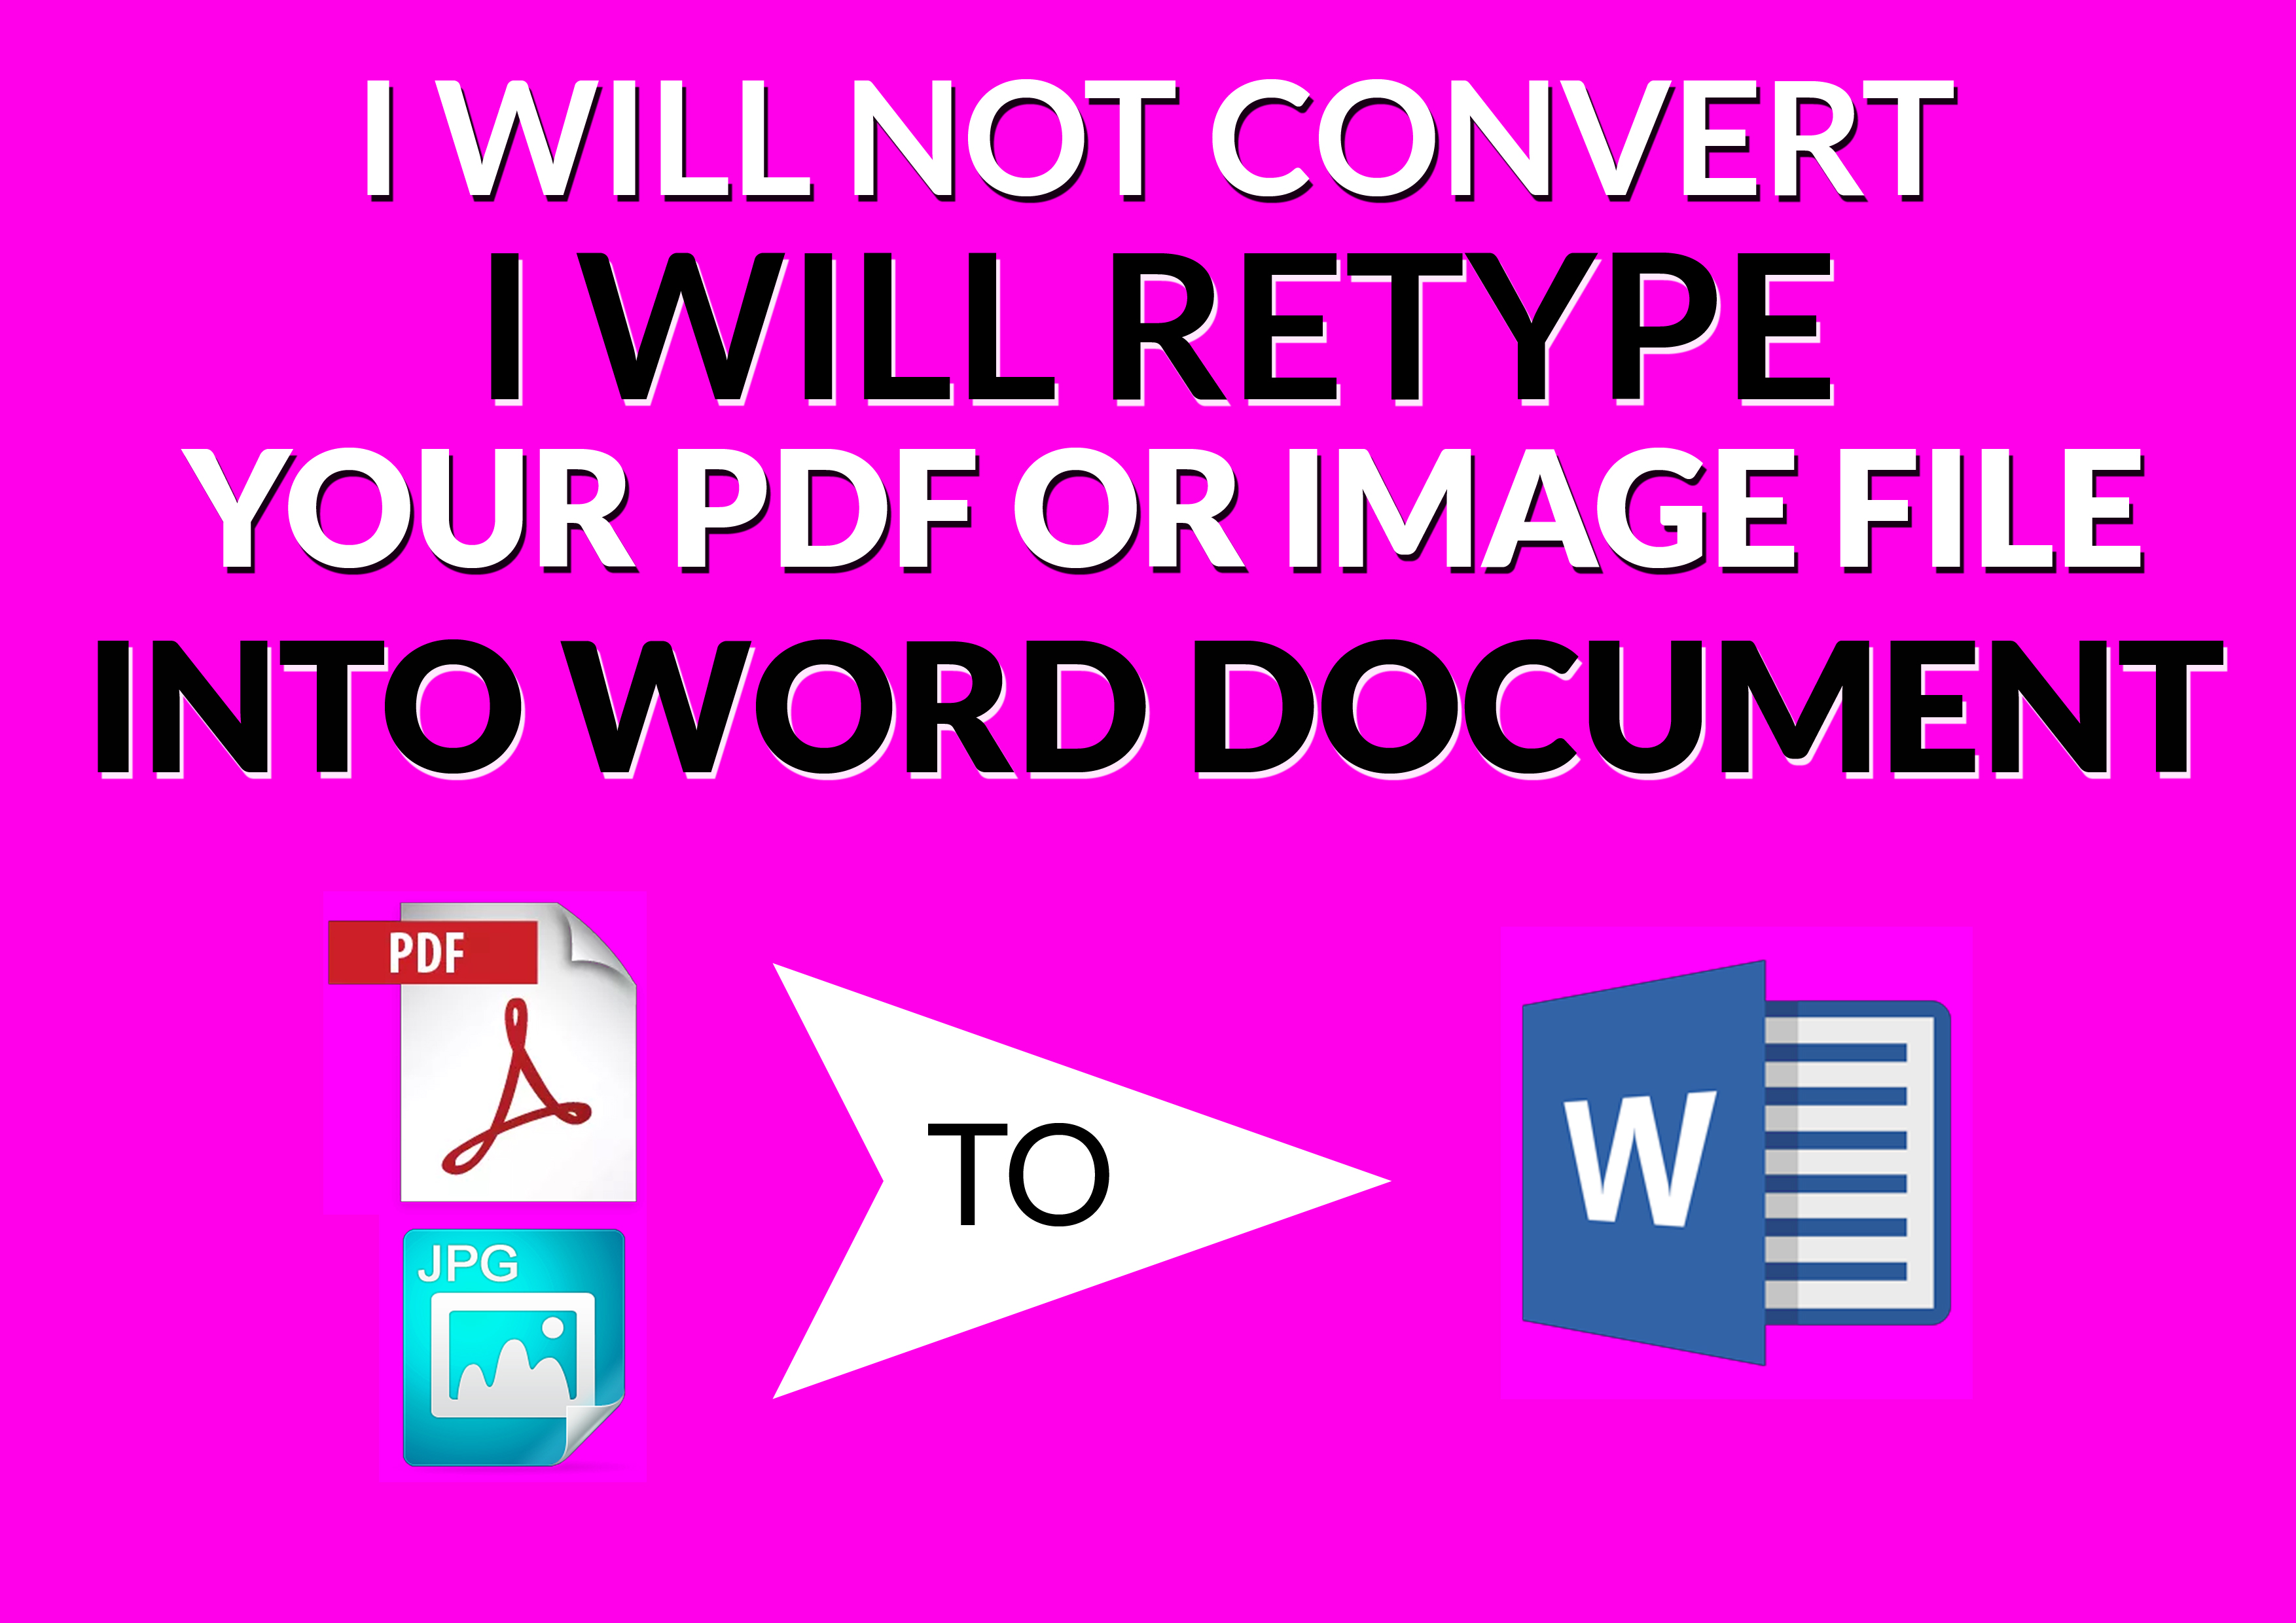 Without convert, I will retype your PDF, JPG to Word Document